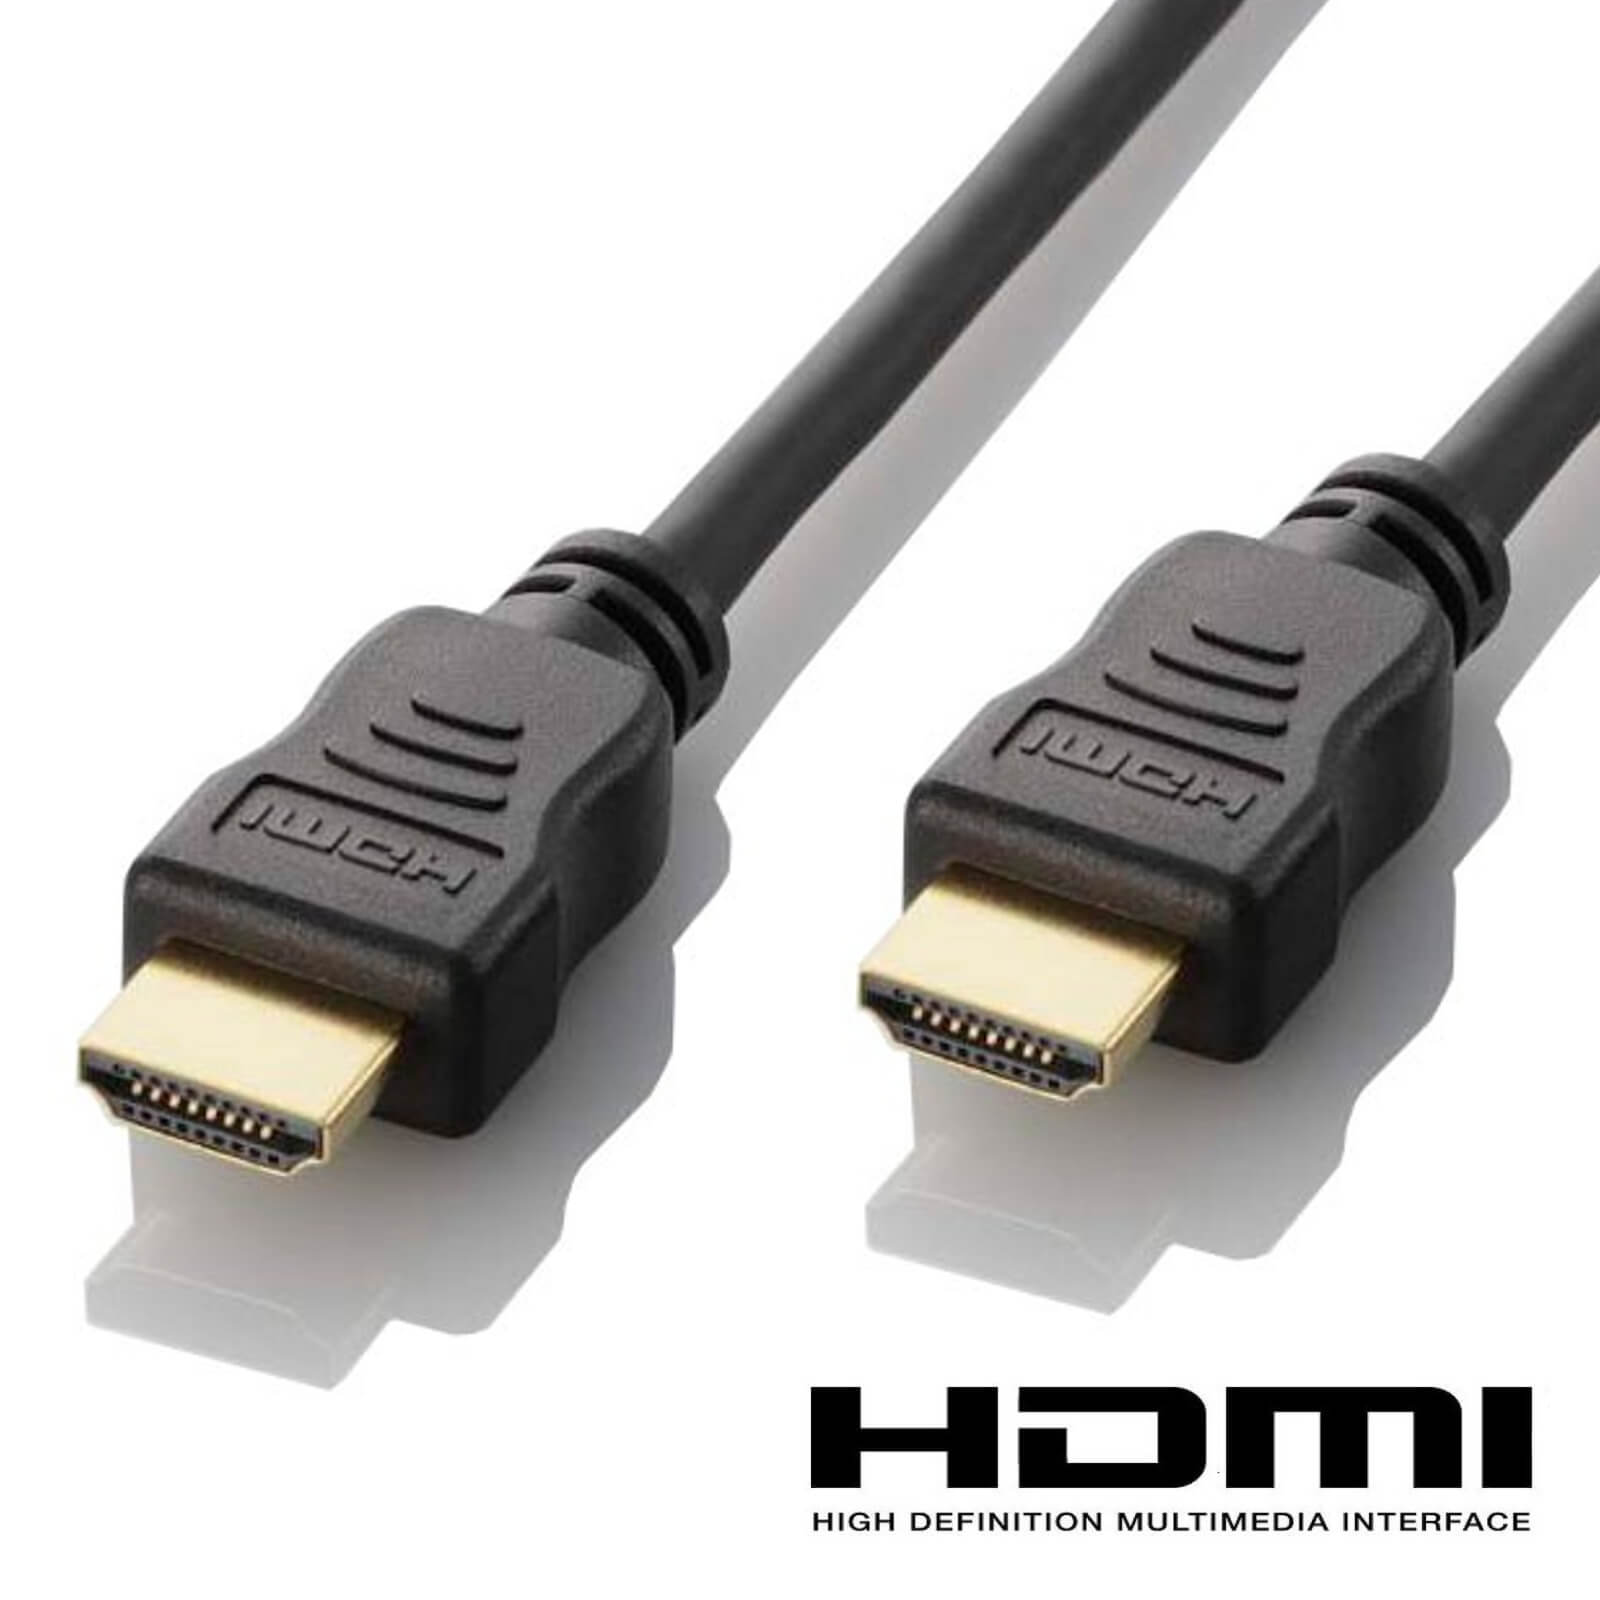 hight resolution of lenovo y700 17 y700 15 hdmi to hdmi 4k ultra hd tv 2m gold lead wire cord cable dorothy s home